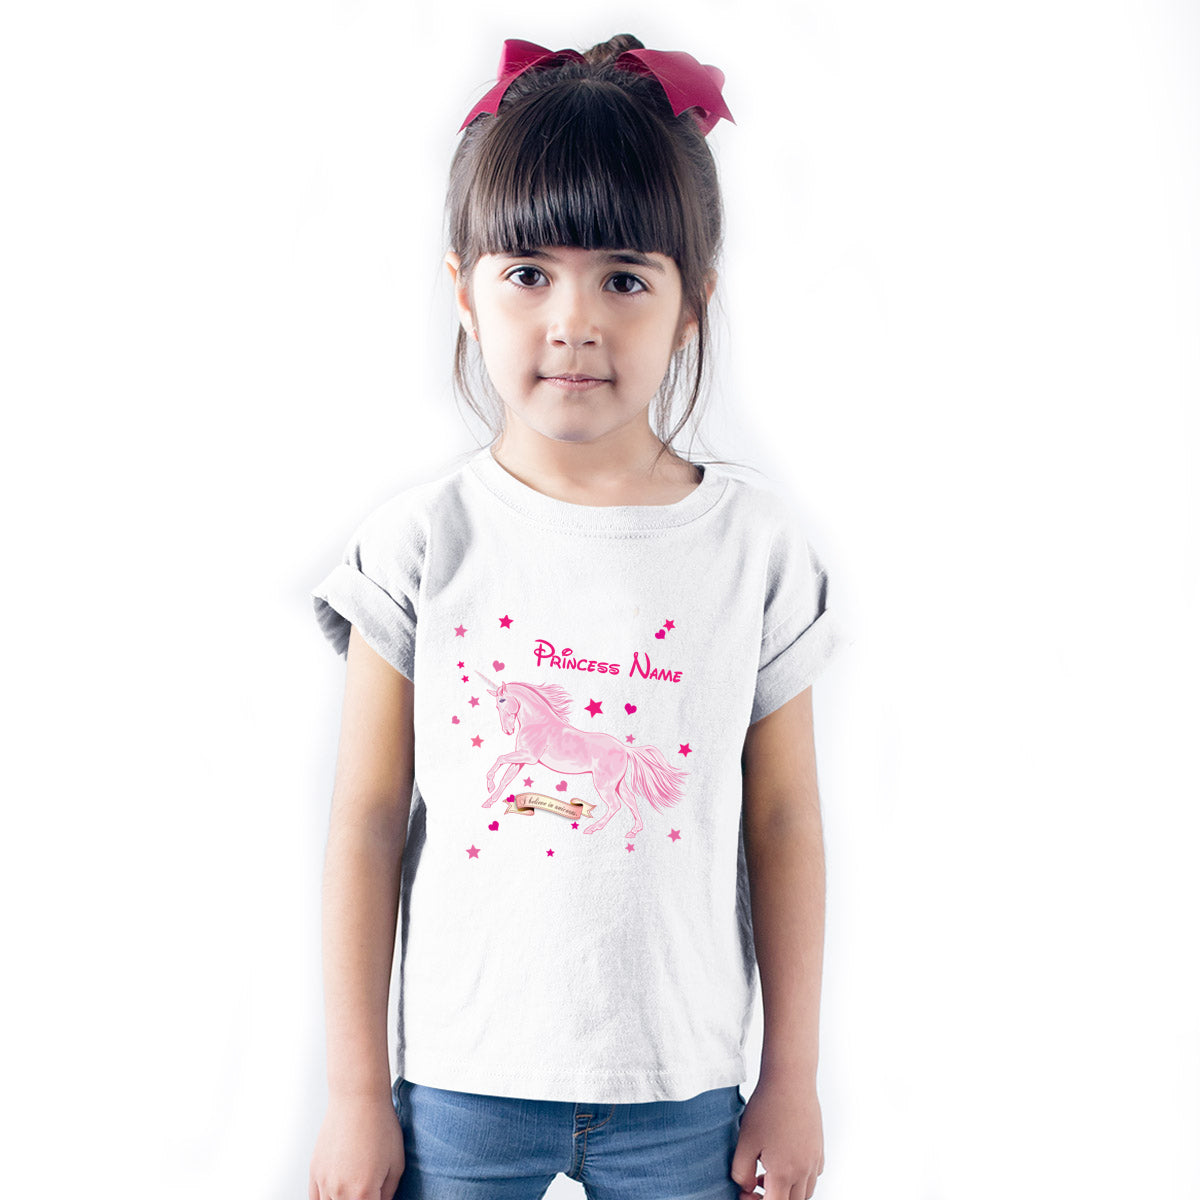 Sprinklecart Personalized Name Printed Unicorn Poly-Cotton T Shirt Wear for Kids (White)